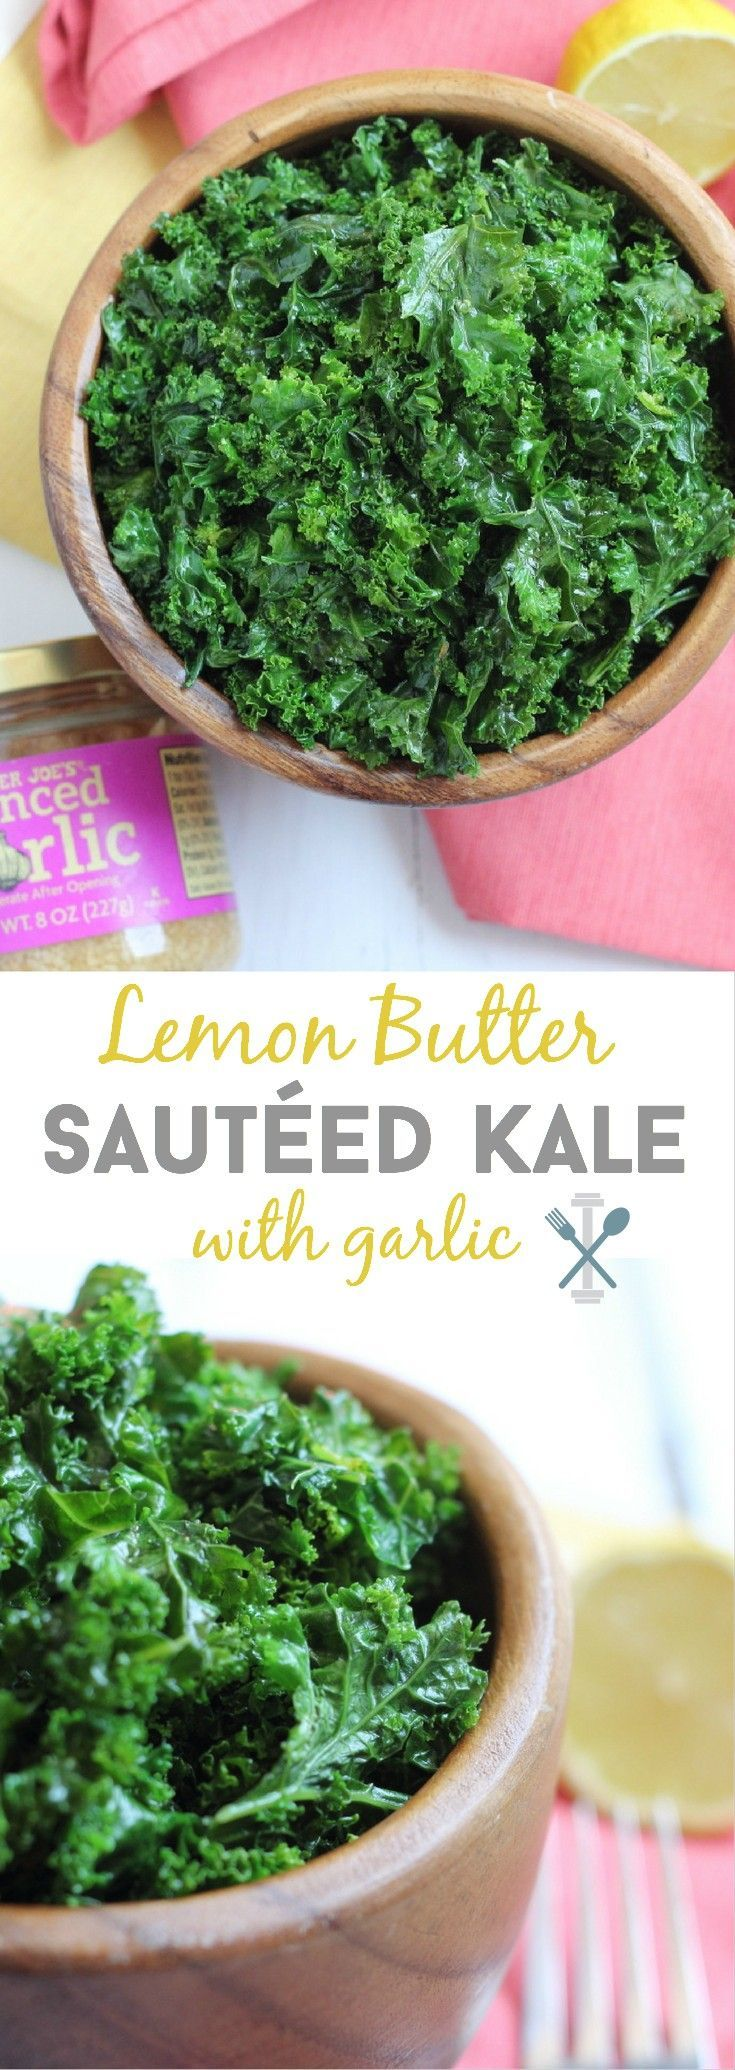 Whole30 compliant - this lemon 'butter' sautéed kale is easy to make and will…